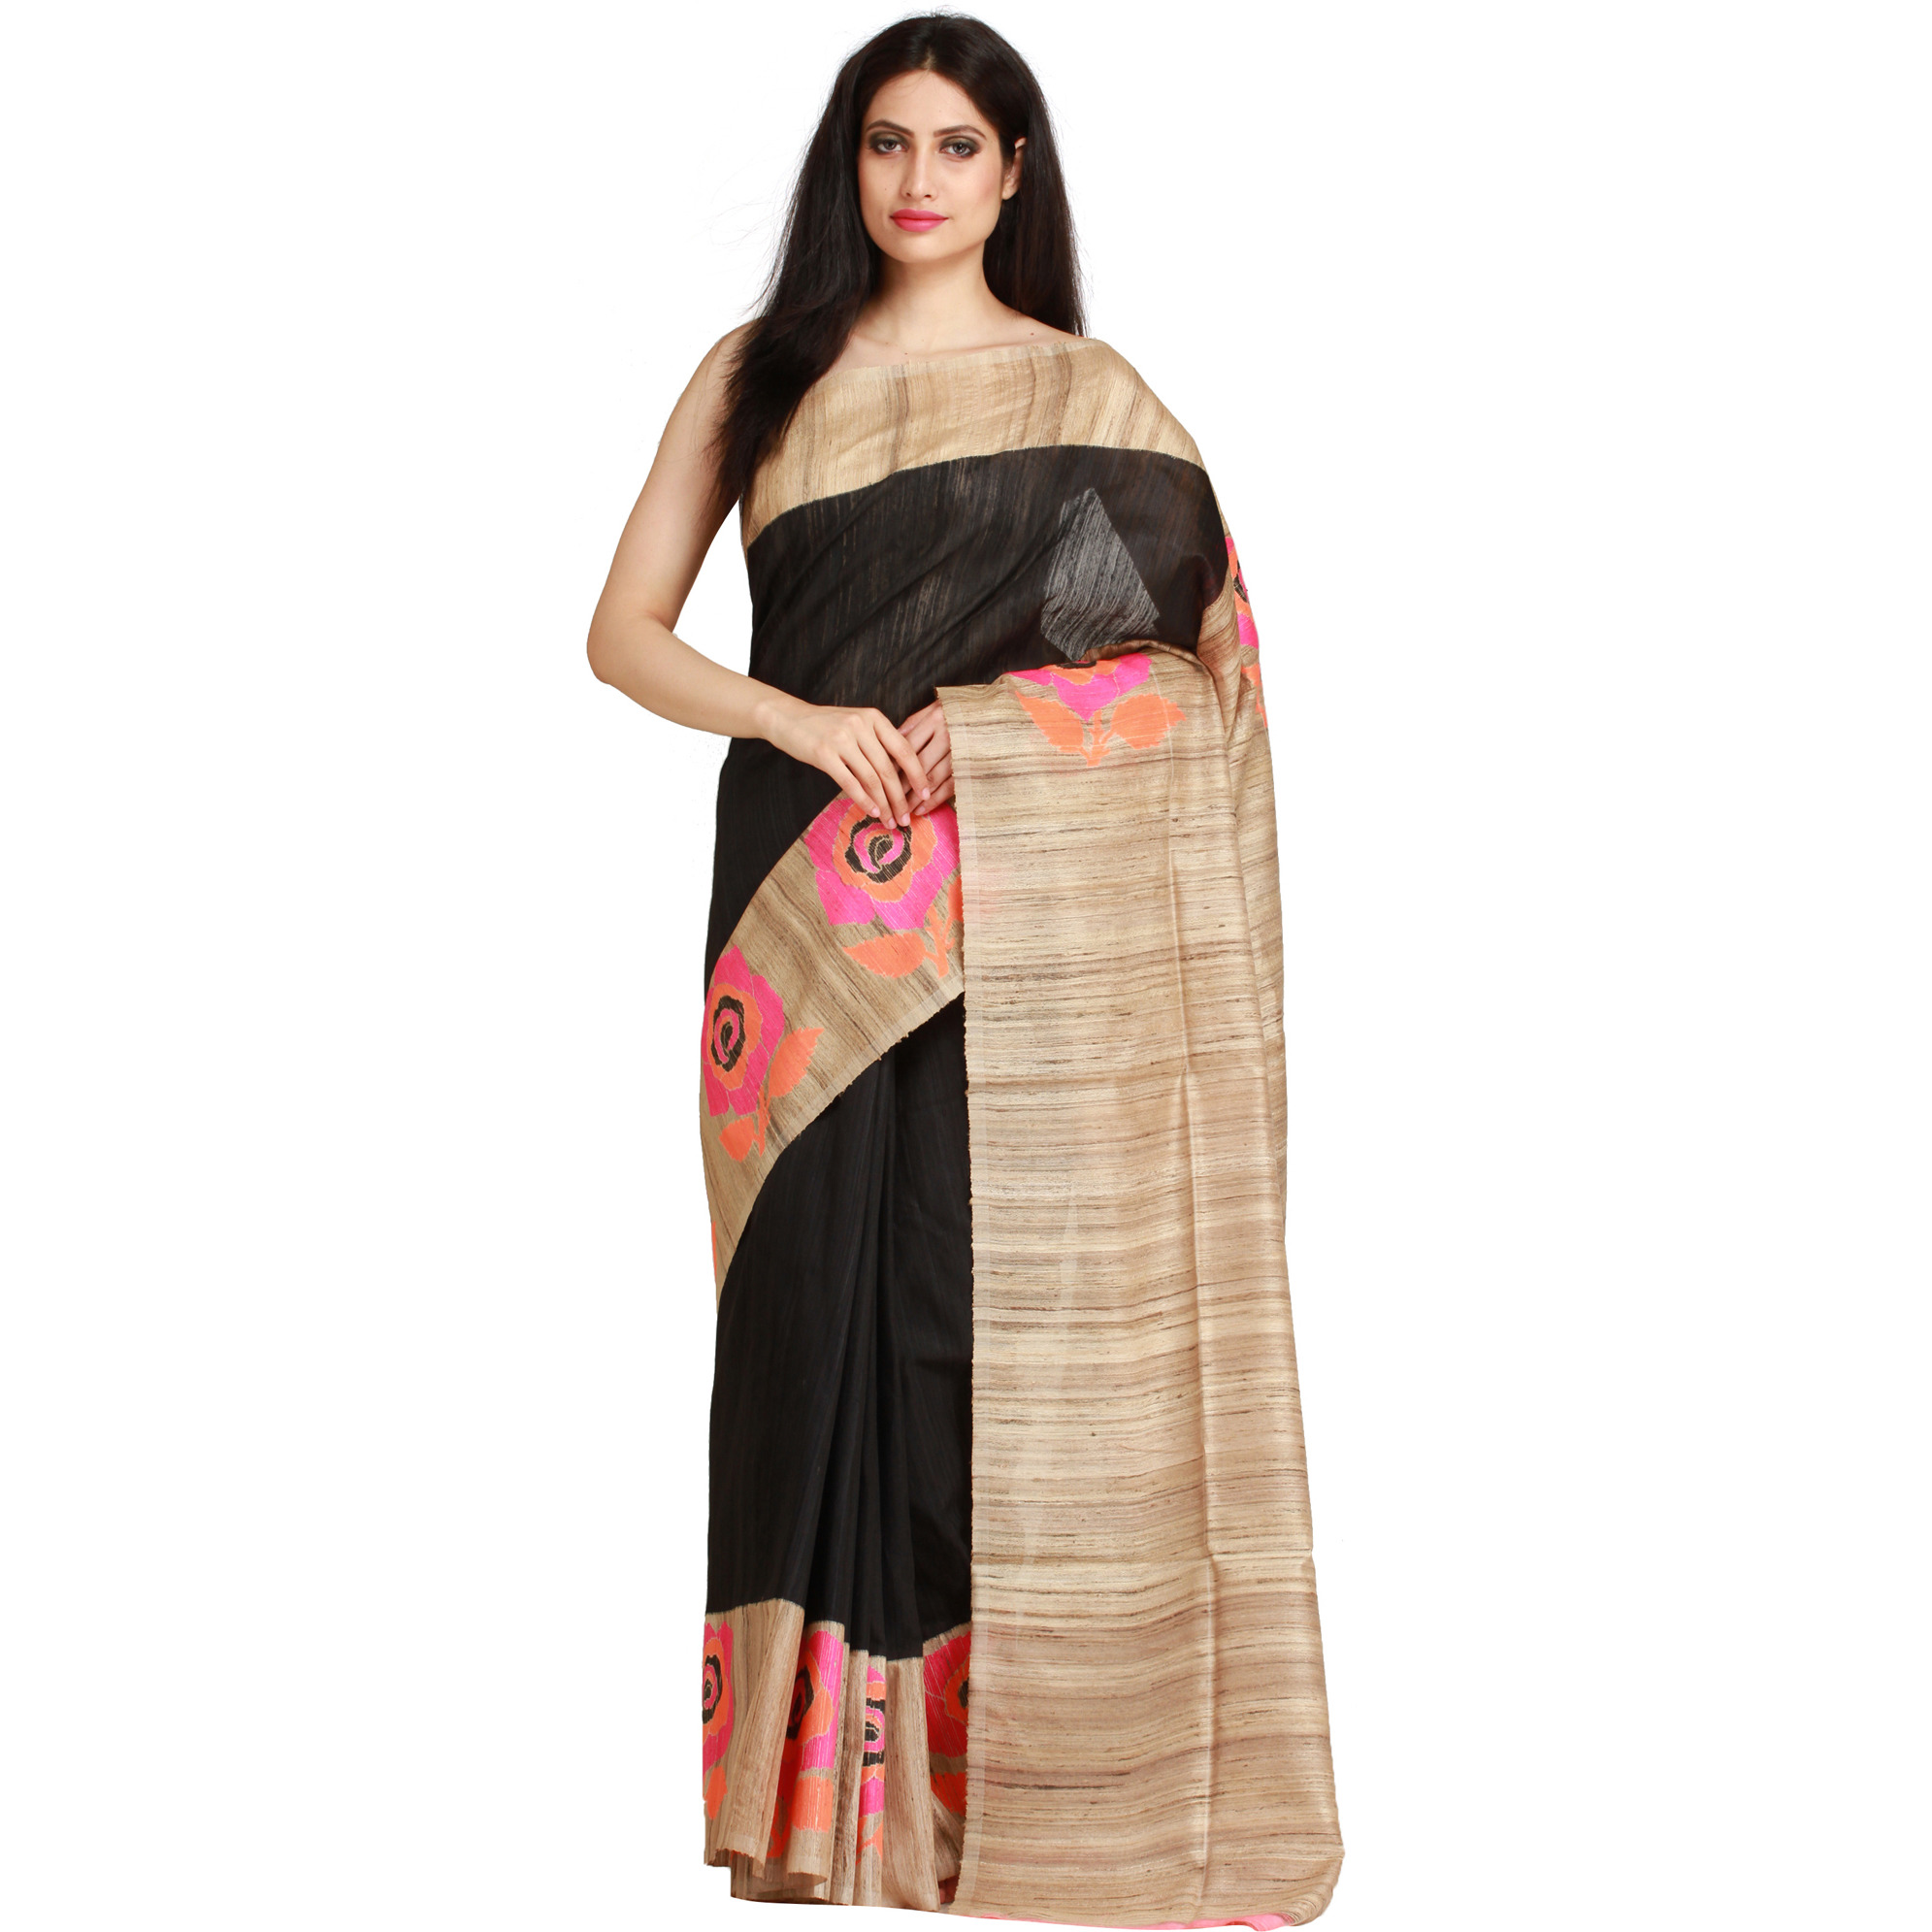 Black and Beige Sari from Banaras with Hand-woven Roses on Border